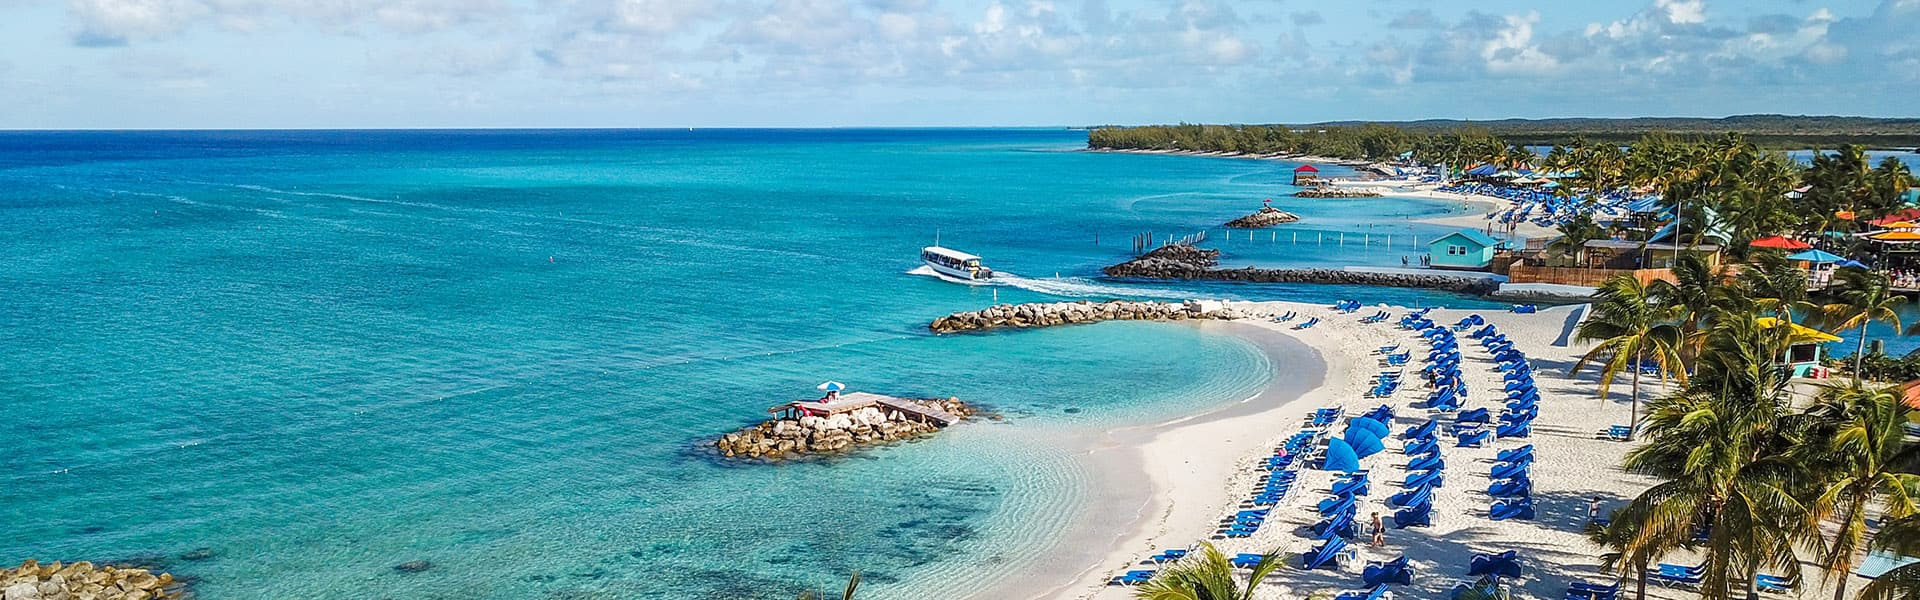 Bahamas: Great Stirrup Cay, Nassau & Grand Bahama Island